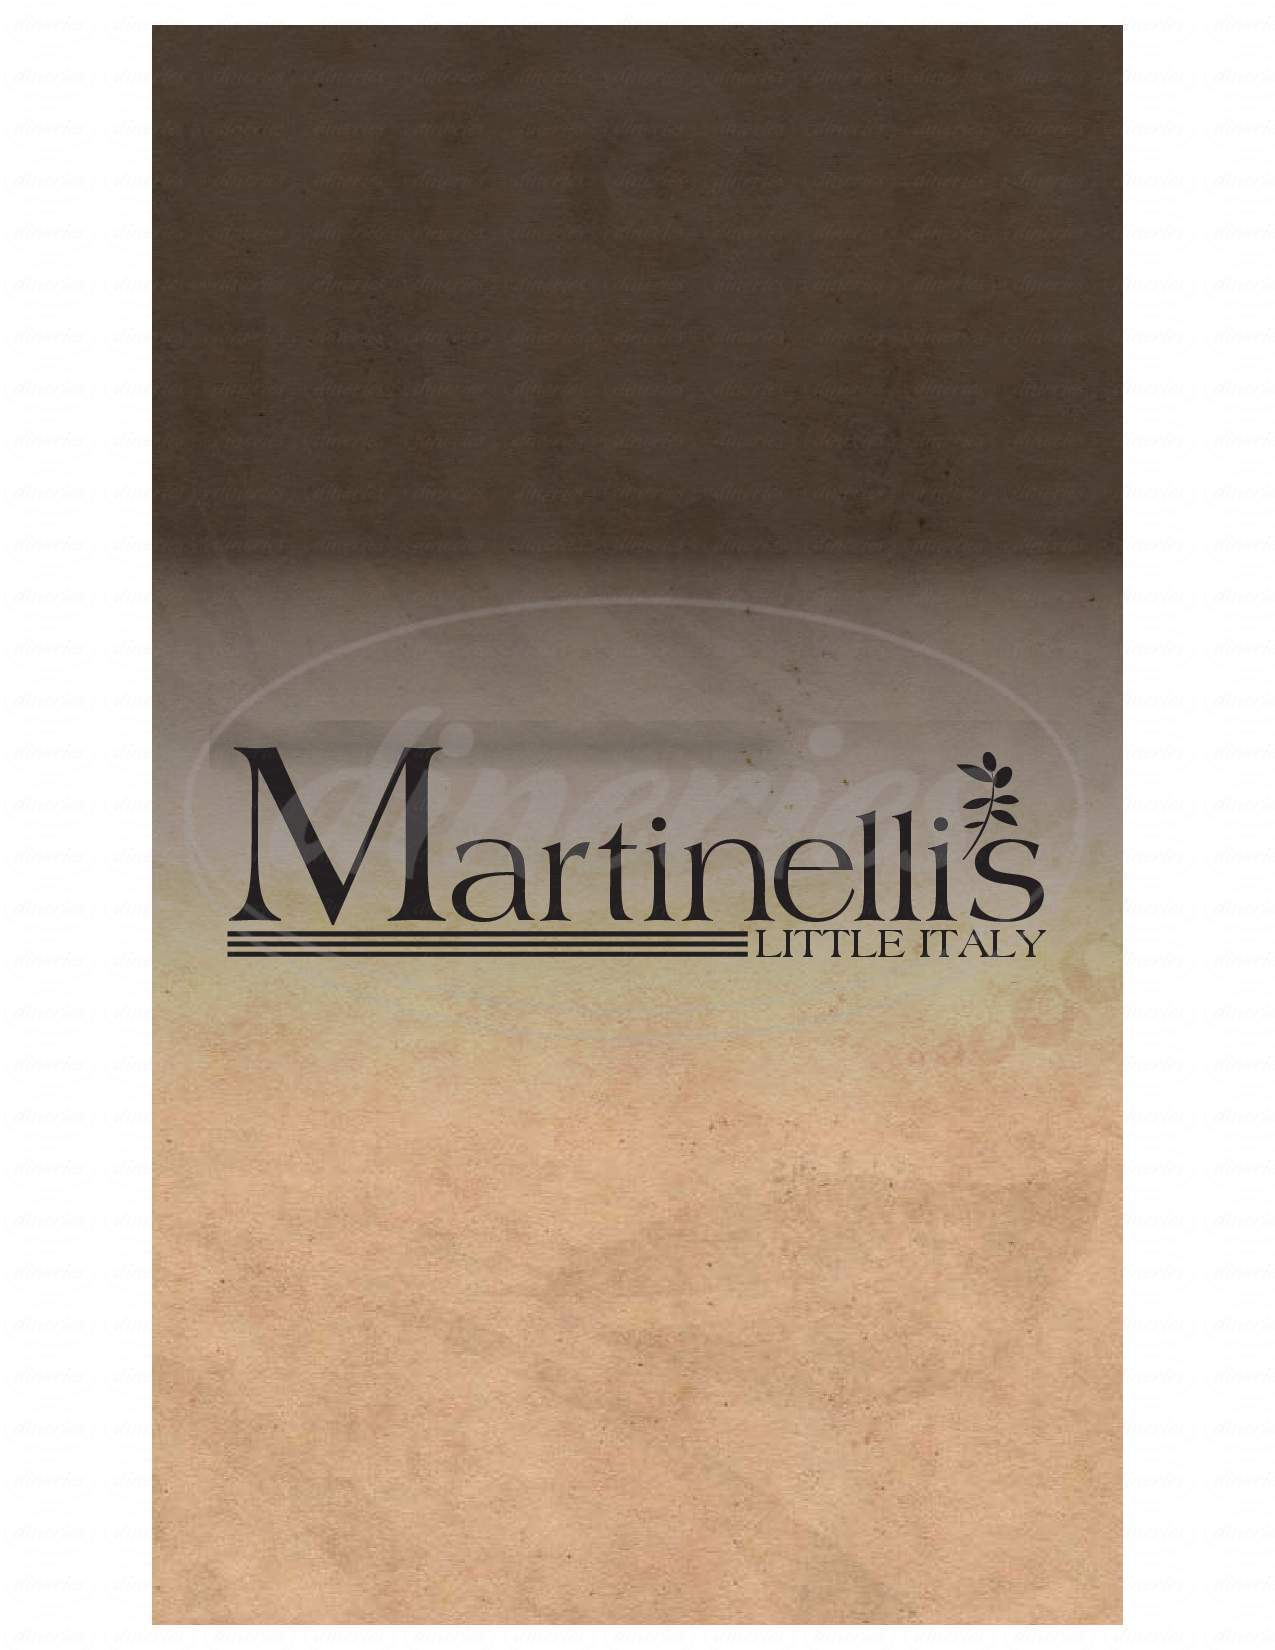 menu for Martinelli's Little Italy